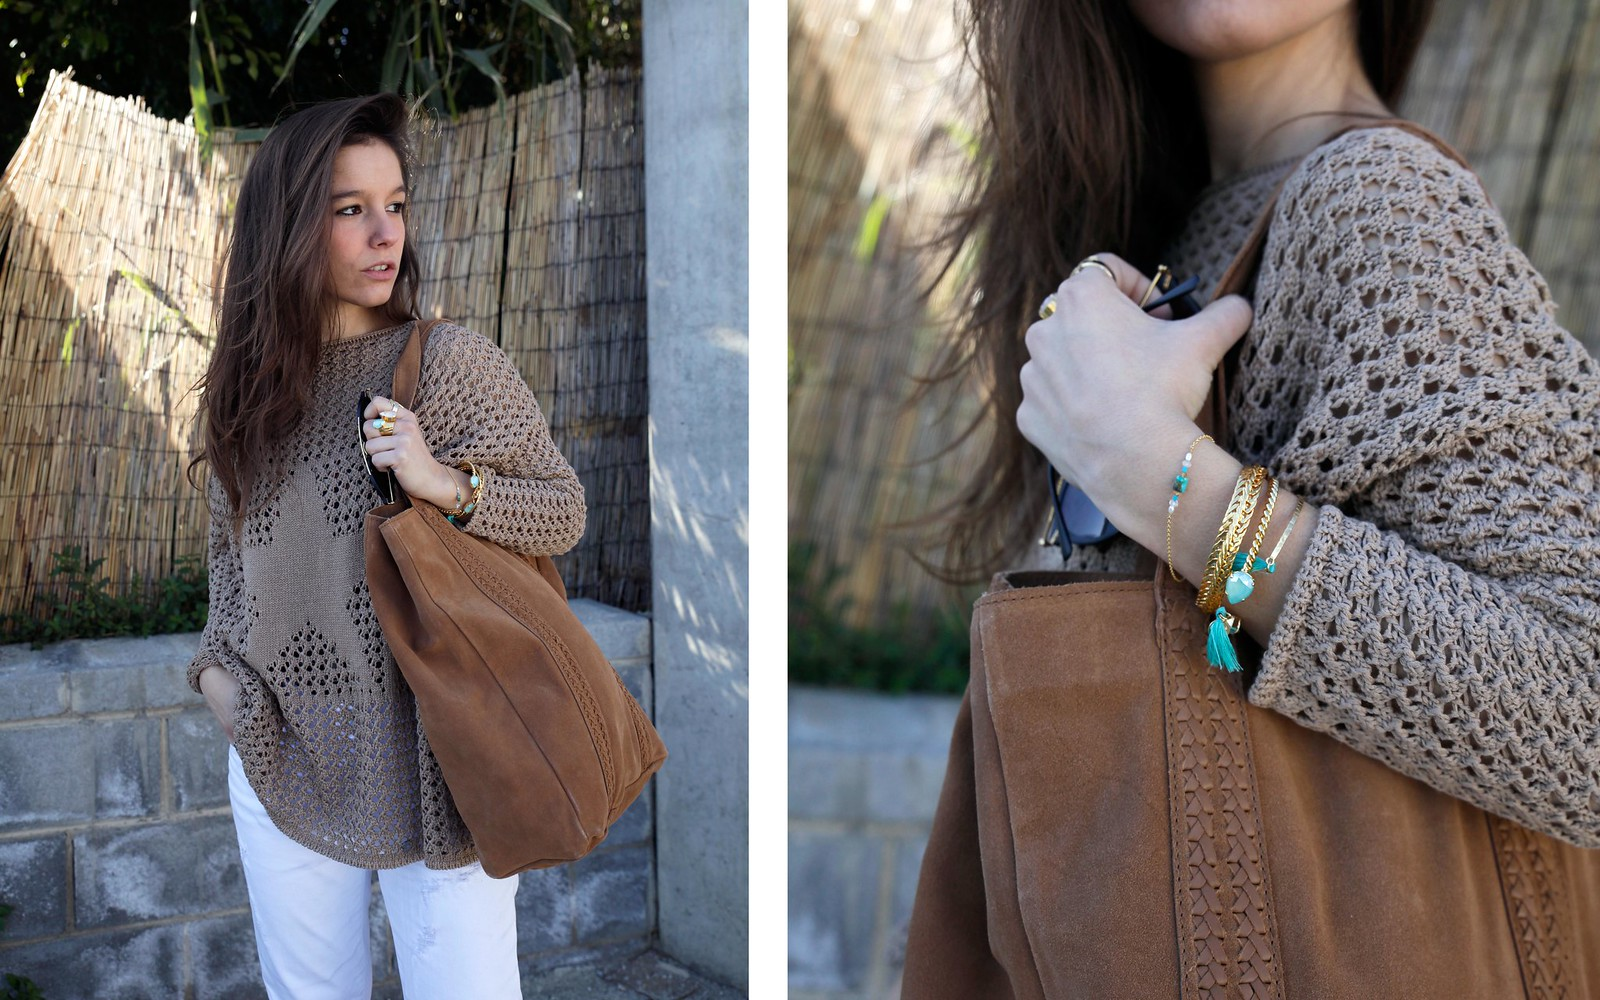 012_SPRING_NEUTRAL_OUTFIT_STREET_STYLE_FASHION_BLOGGER_INFLUENCER_BARCELONA_THEGUESTGIRL